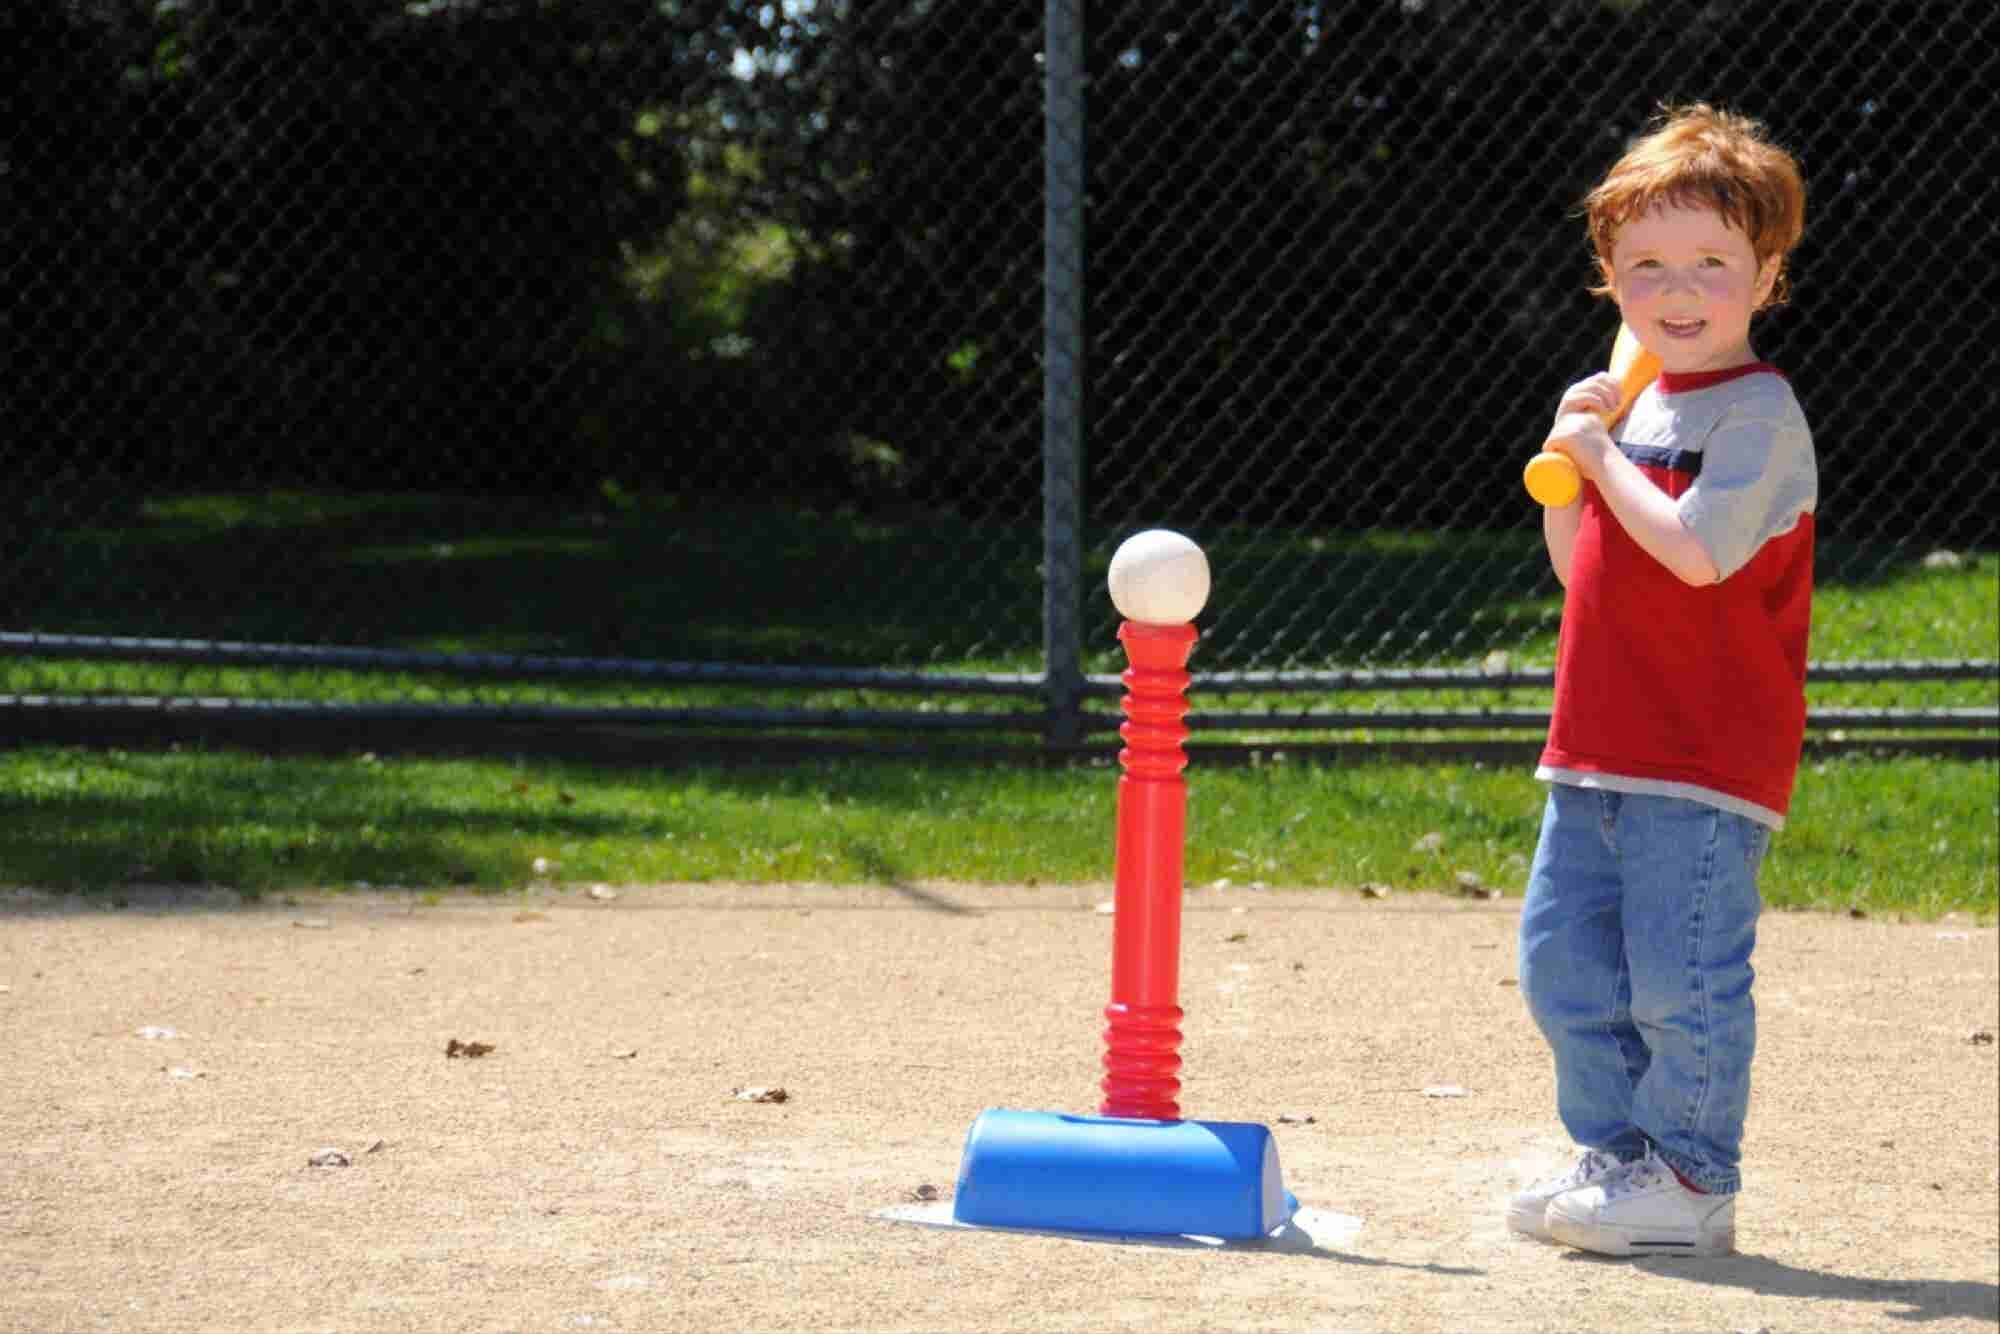 Like a Toddler Hitting a Tee-Ball, an Entrepreneur Will Fail Without Focusing on First-Things-First